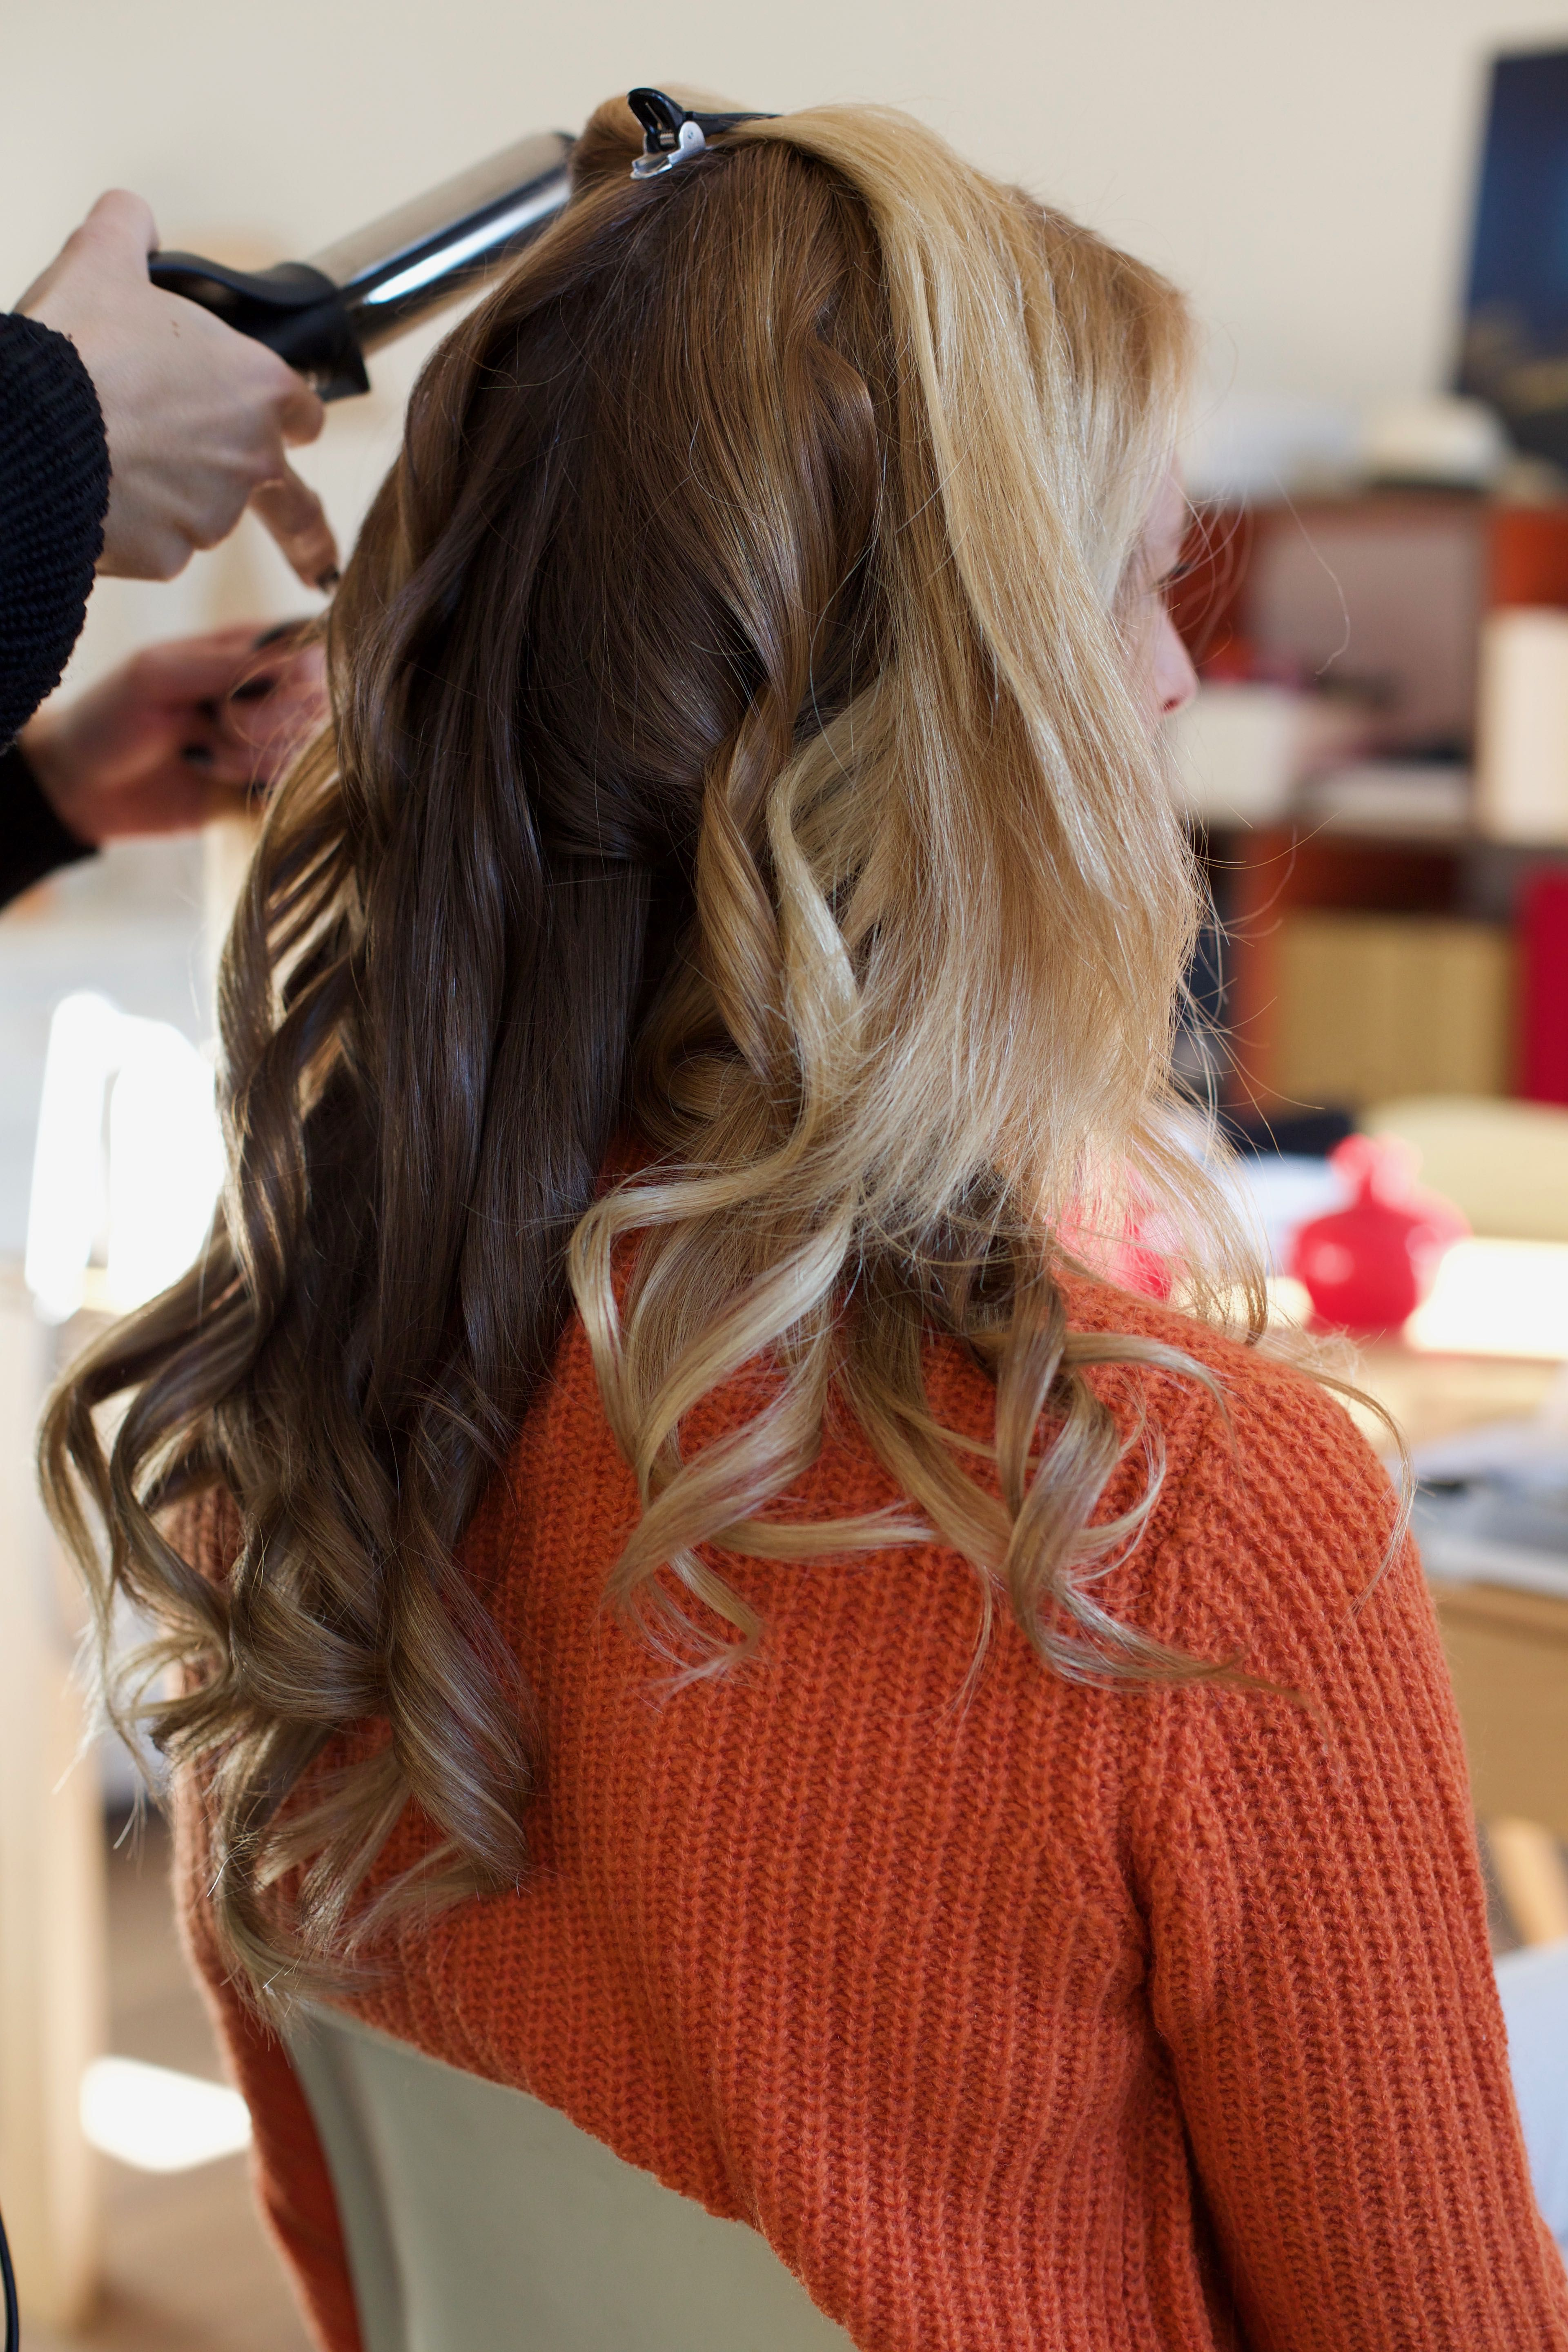 20+ Coiffure brushing inspiration